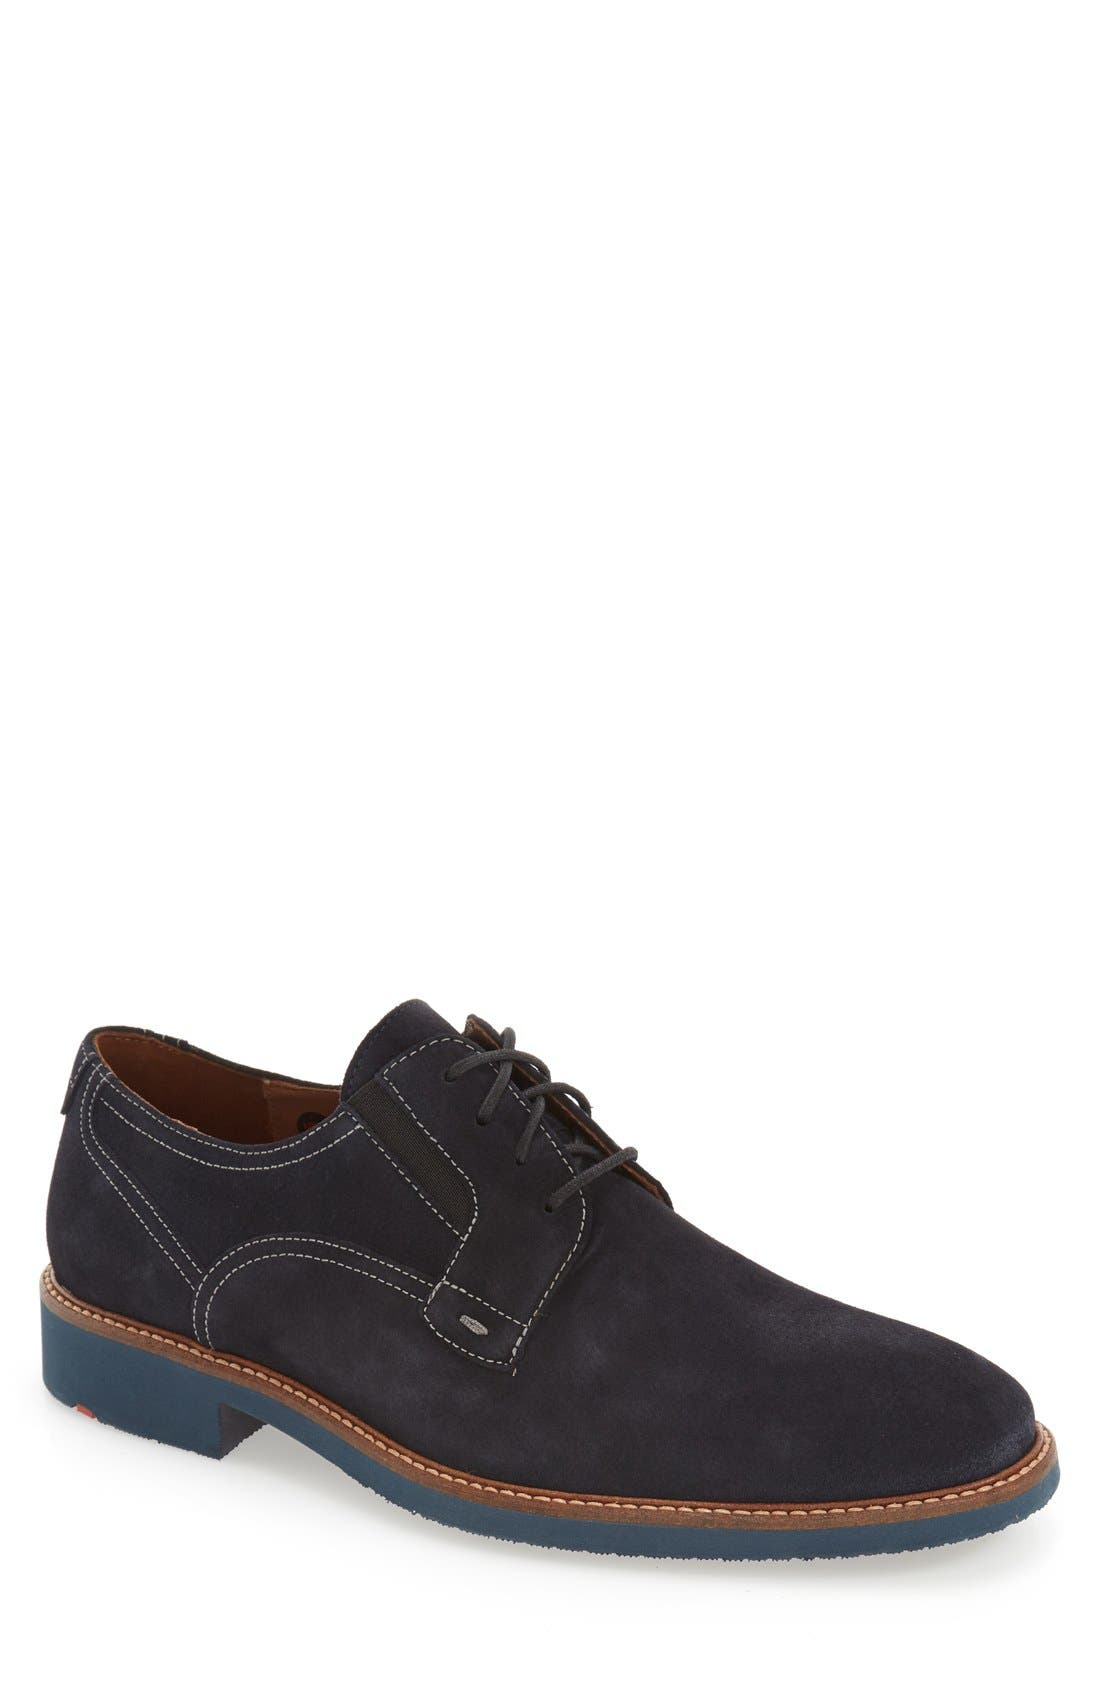 kidron guys ★ lloyd 'kidron' oxford (men) @ on sale mens wide shoes, shop sale price today and get up to 30-70% off [lloyd 'kidron' oxford (men)] free.